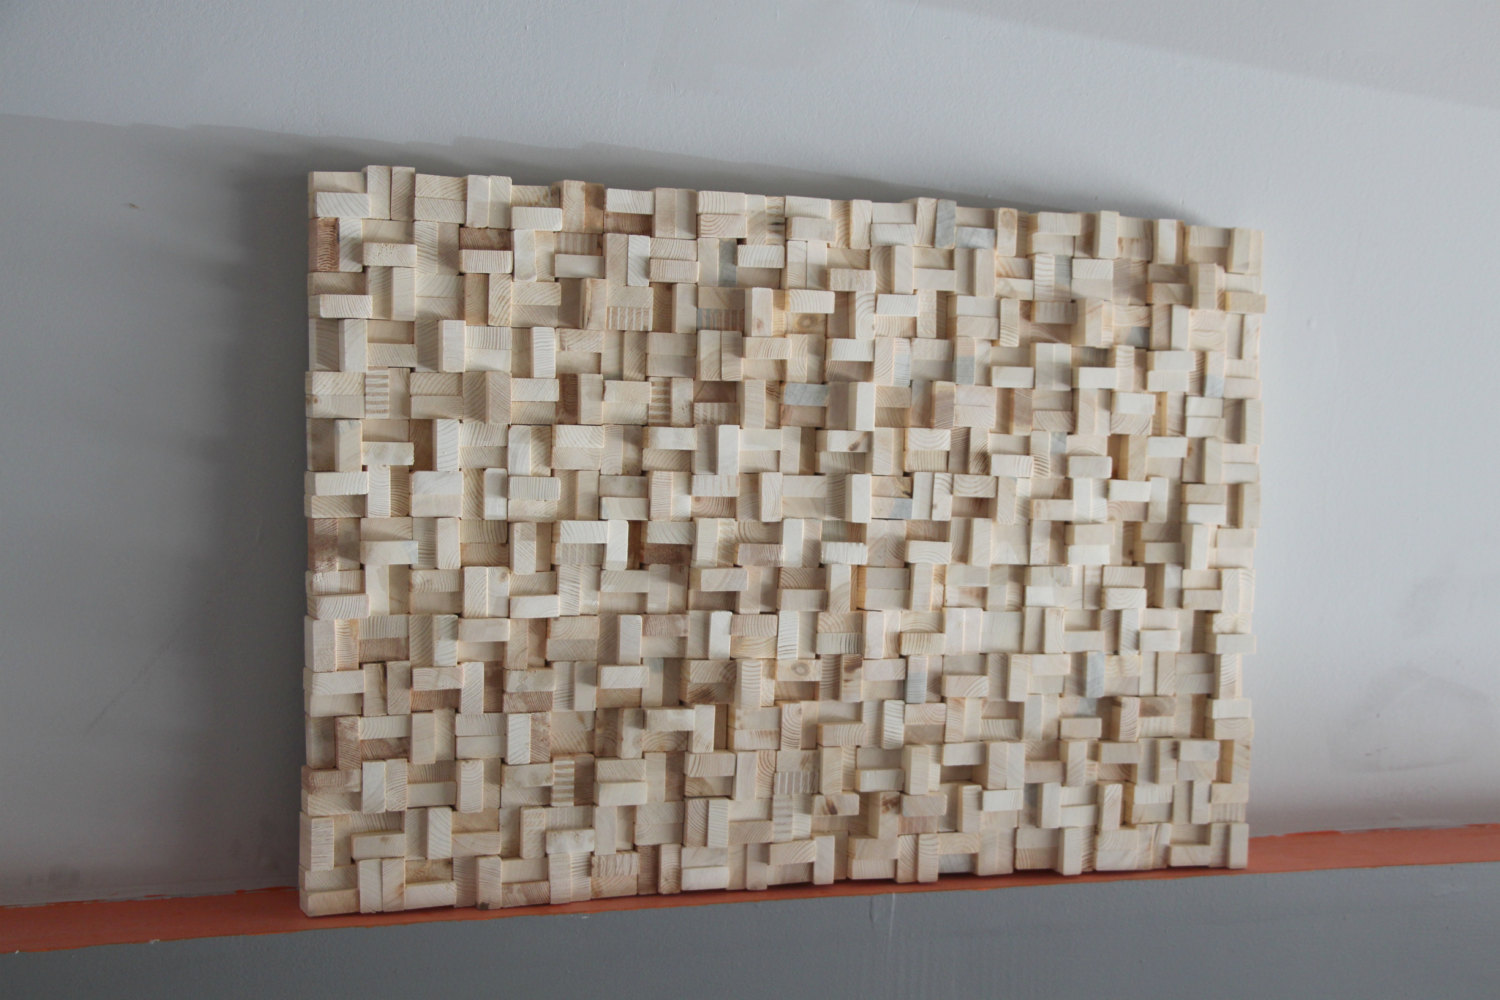 ... Wood Wall Art, Wood Mosaic, Reclaimed Wood. 🔍. Previous; Next